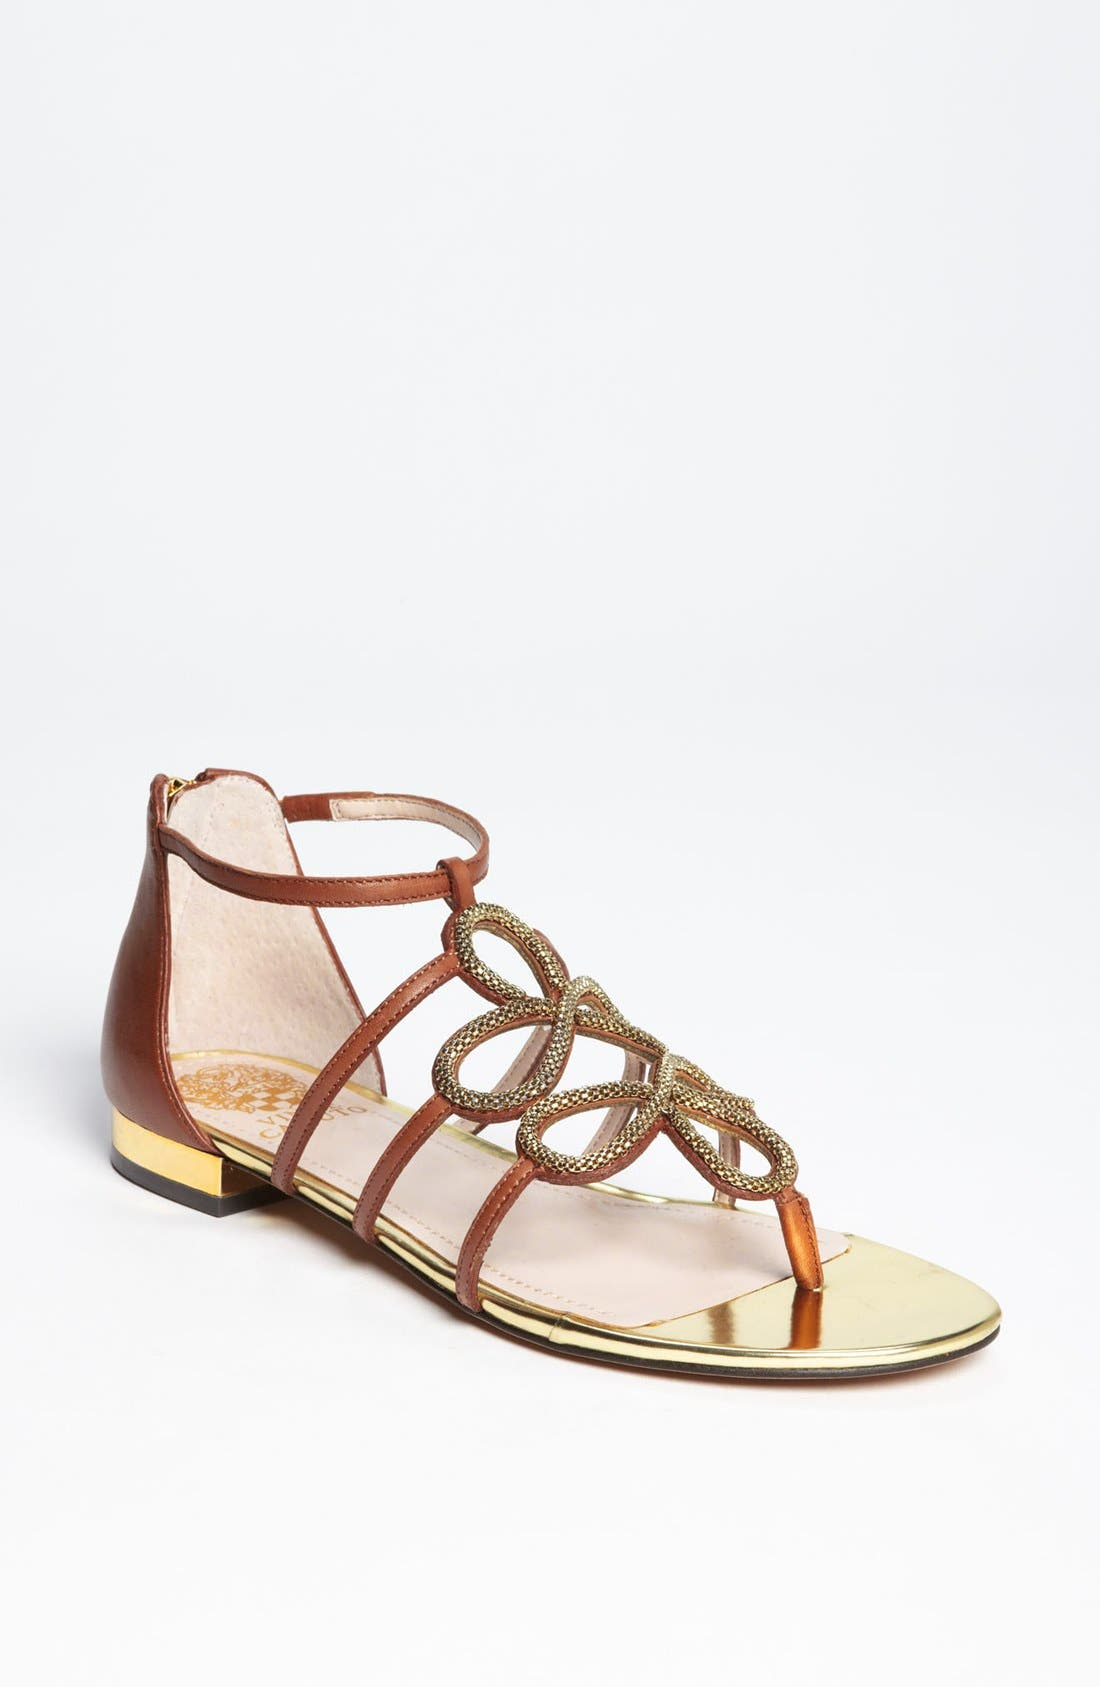 Main Image - Vince Camuto 'Harissa' Sandal (Nordstrom Exclusive)